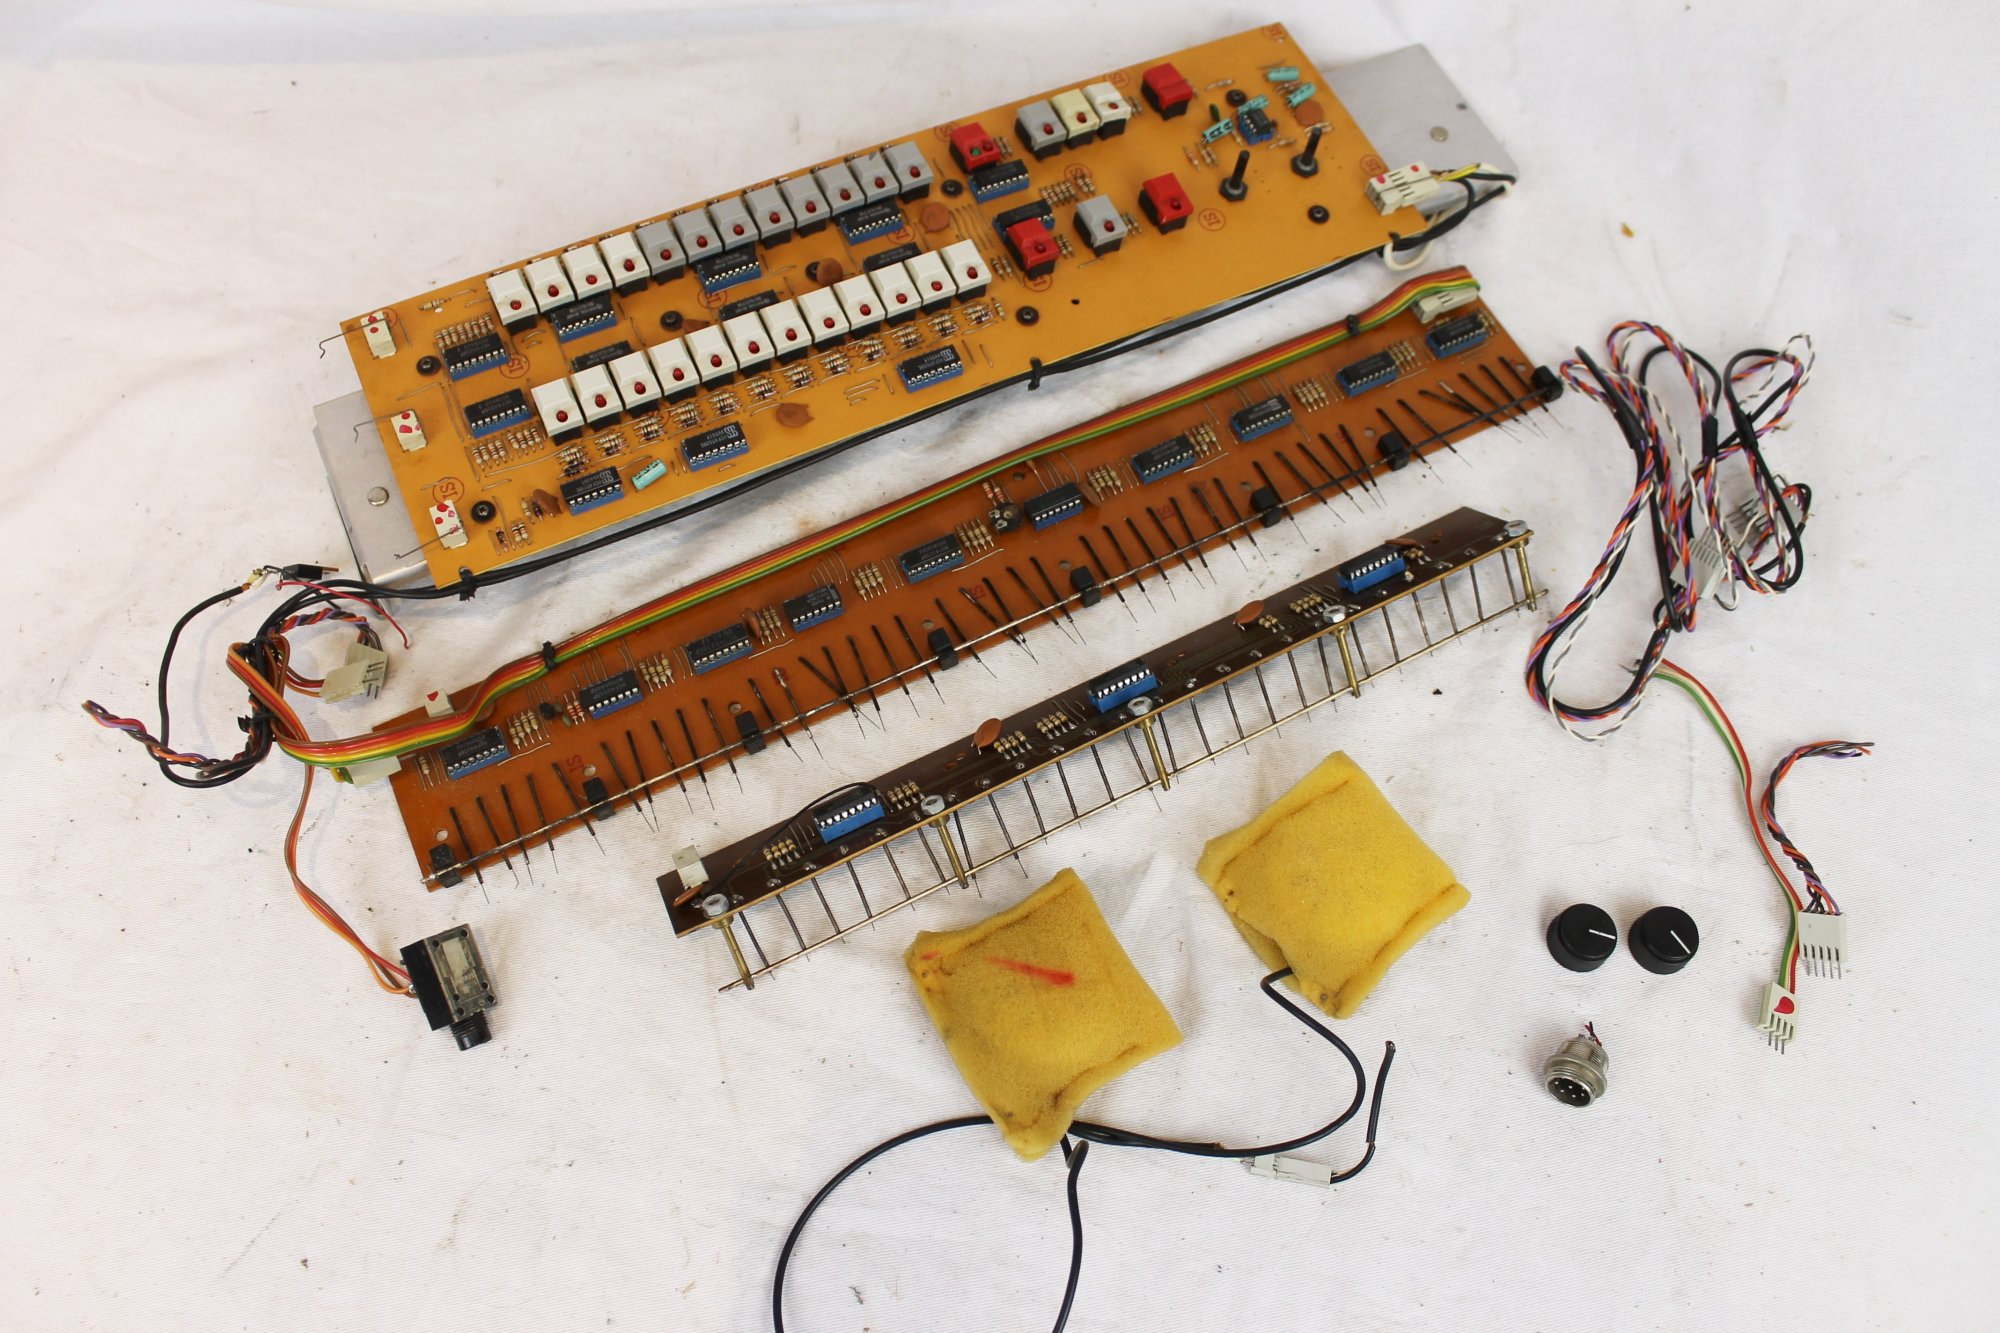 Solton Accordion Parts - Electronic Components and Dynamic Microphones